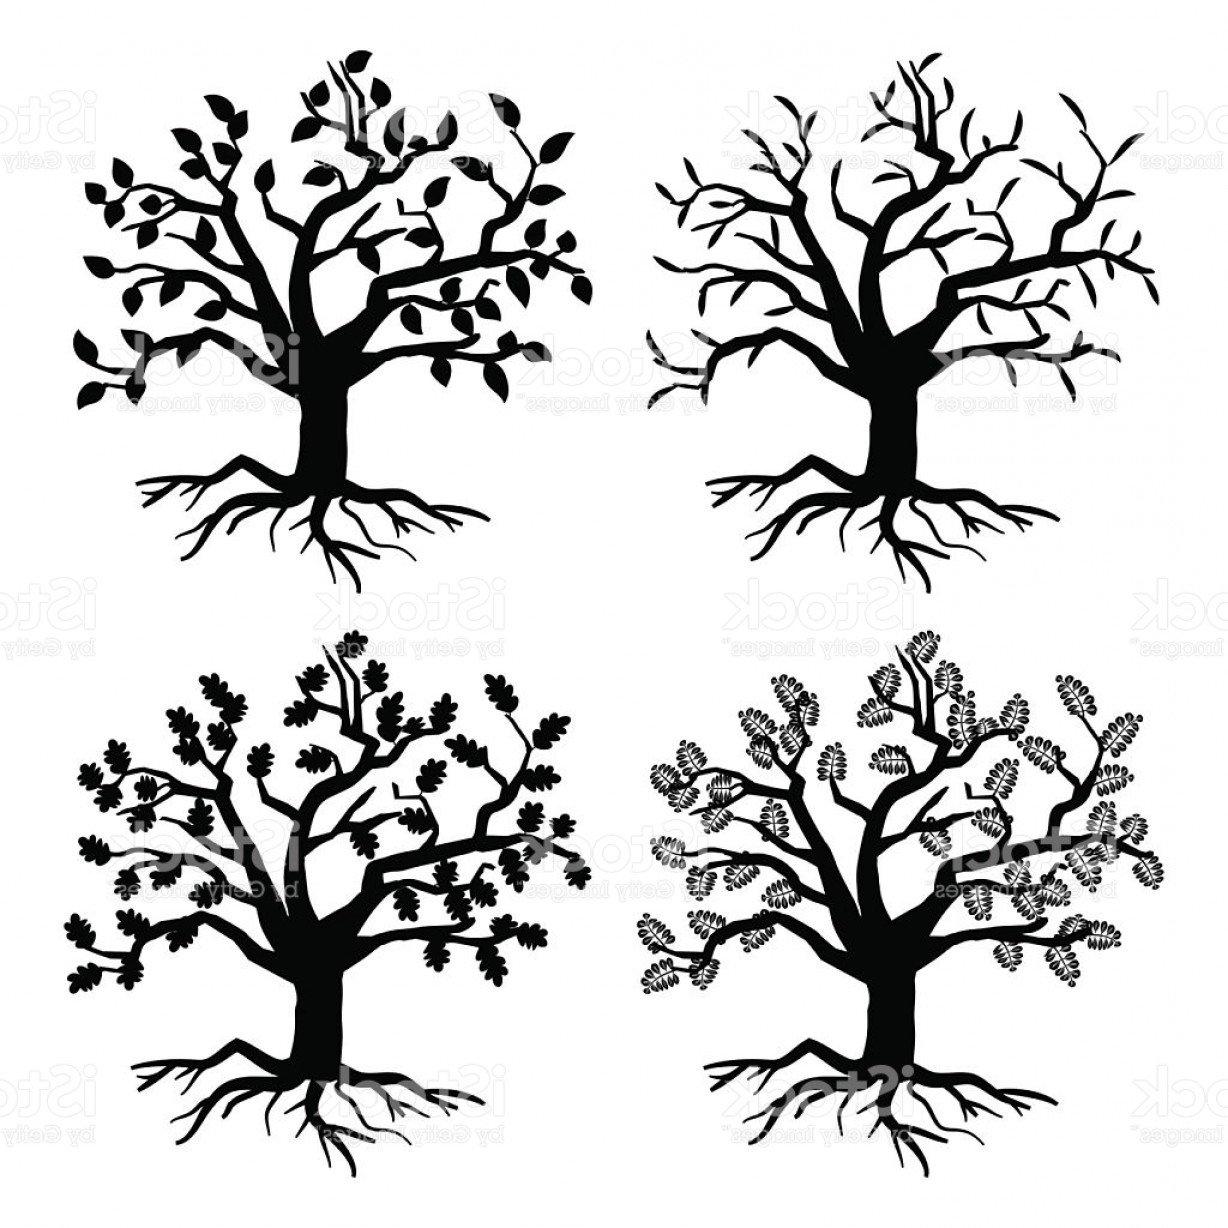 Oak Tree Silhouette Vector Graphics: Park Old Trees Vector Tree Silhouettes With Roots And Leaves Gm